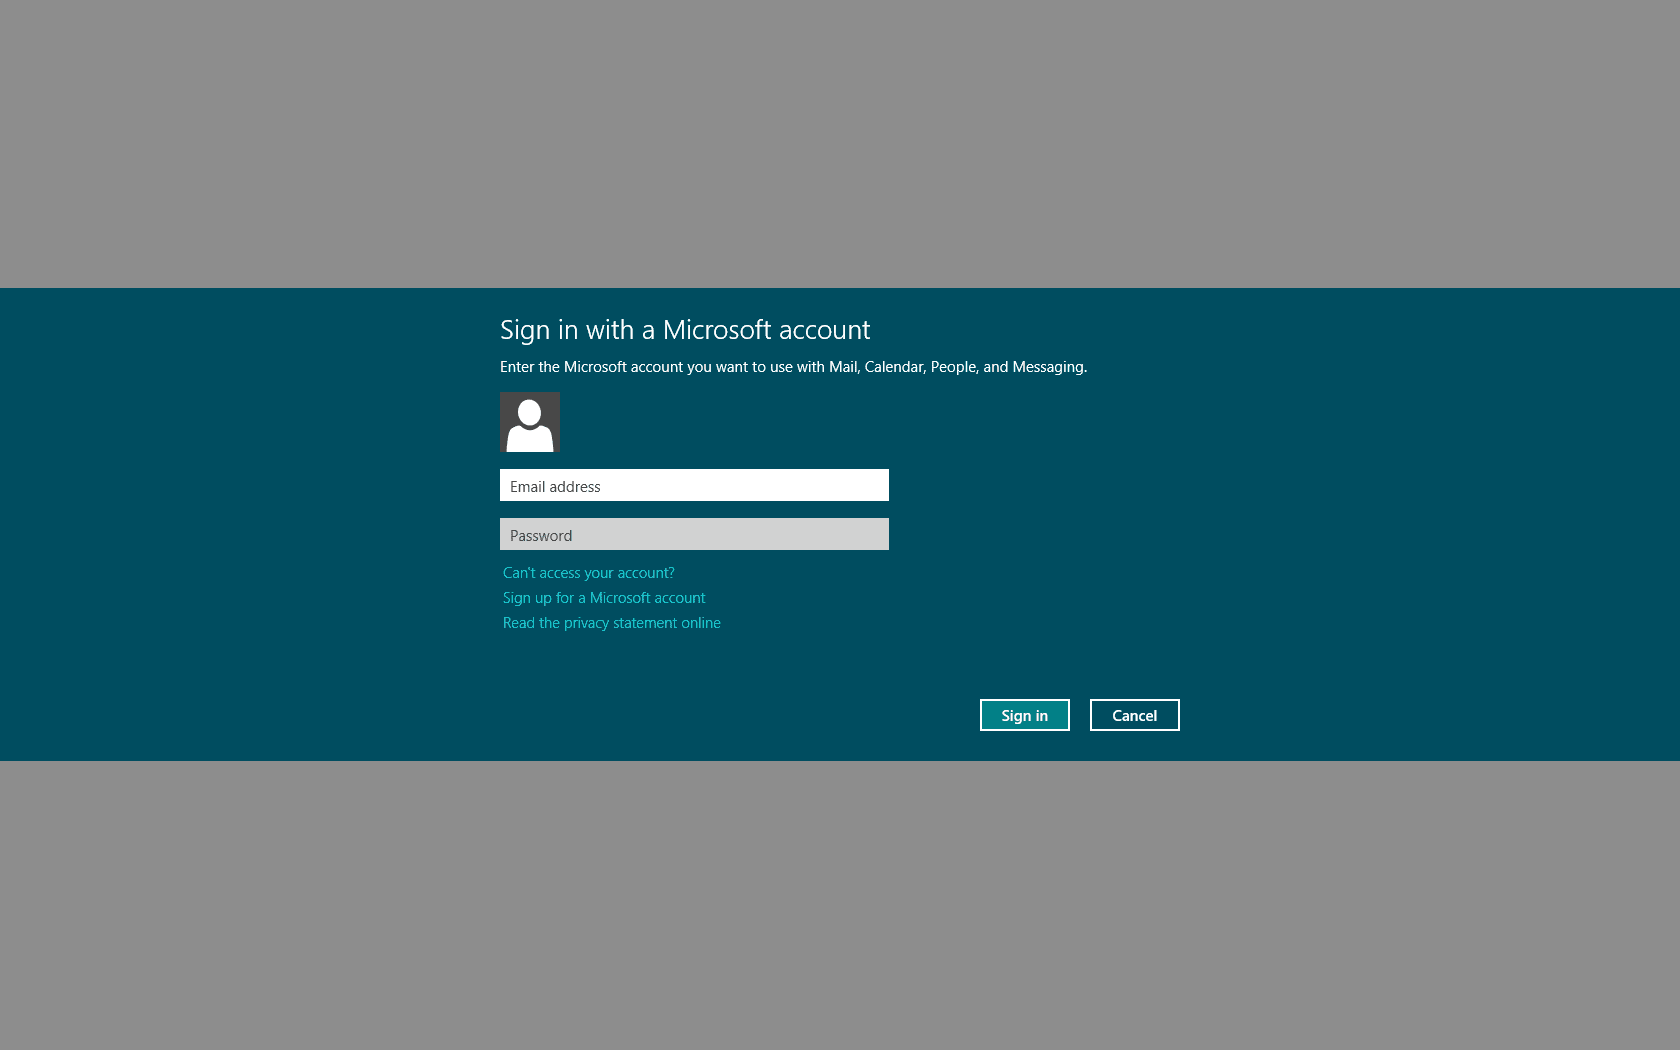 how to find skype id using microsoft account